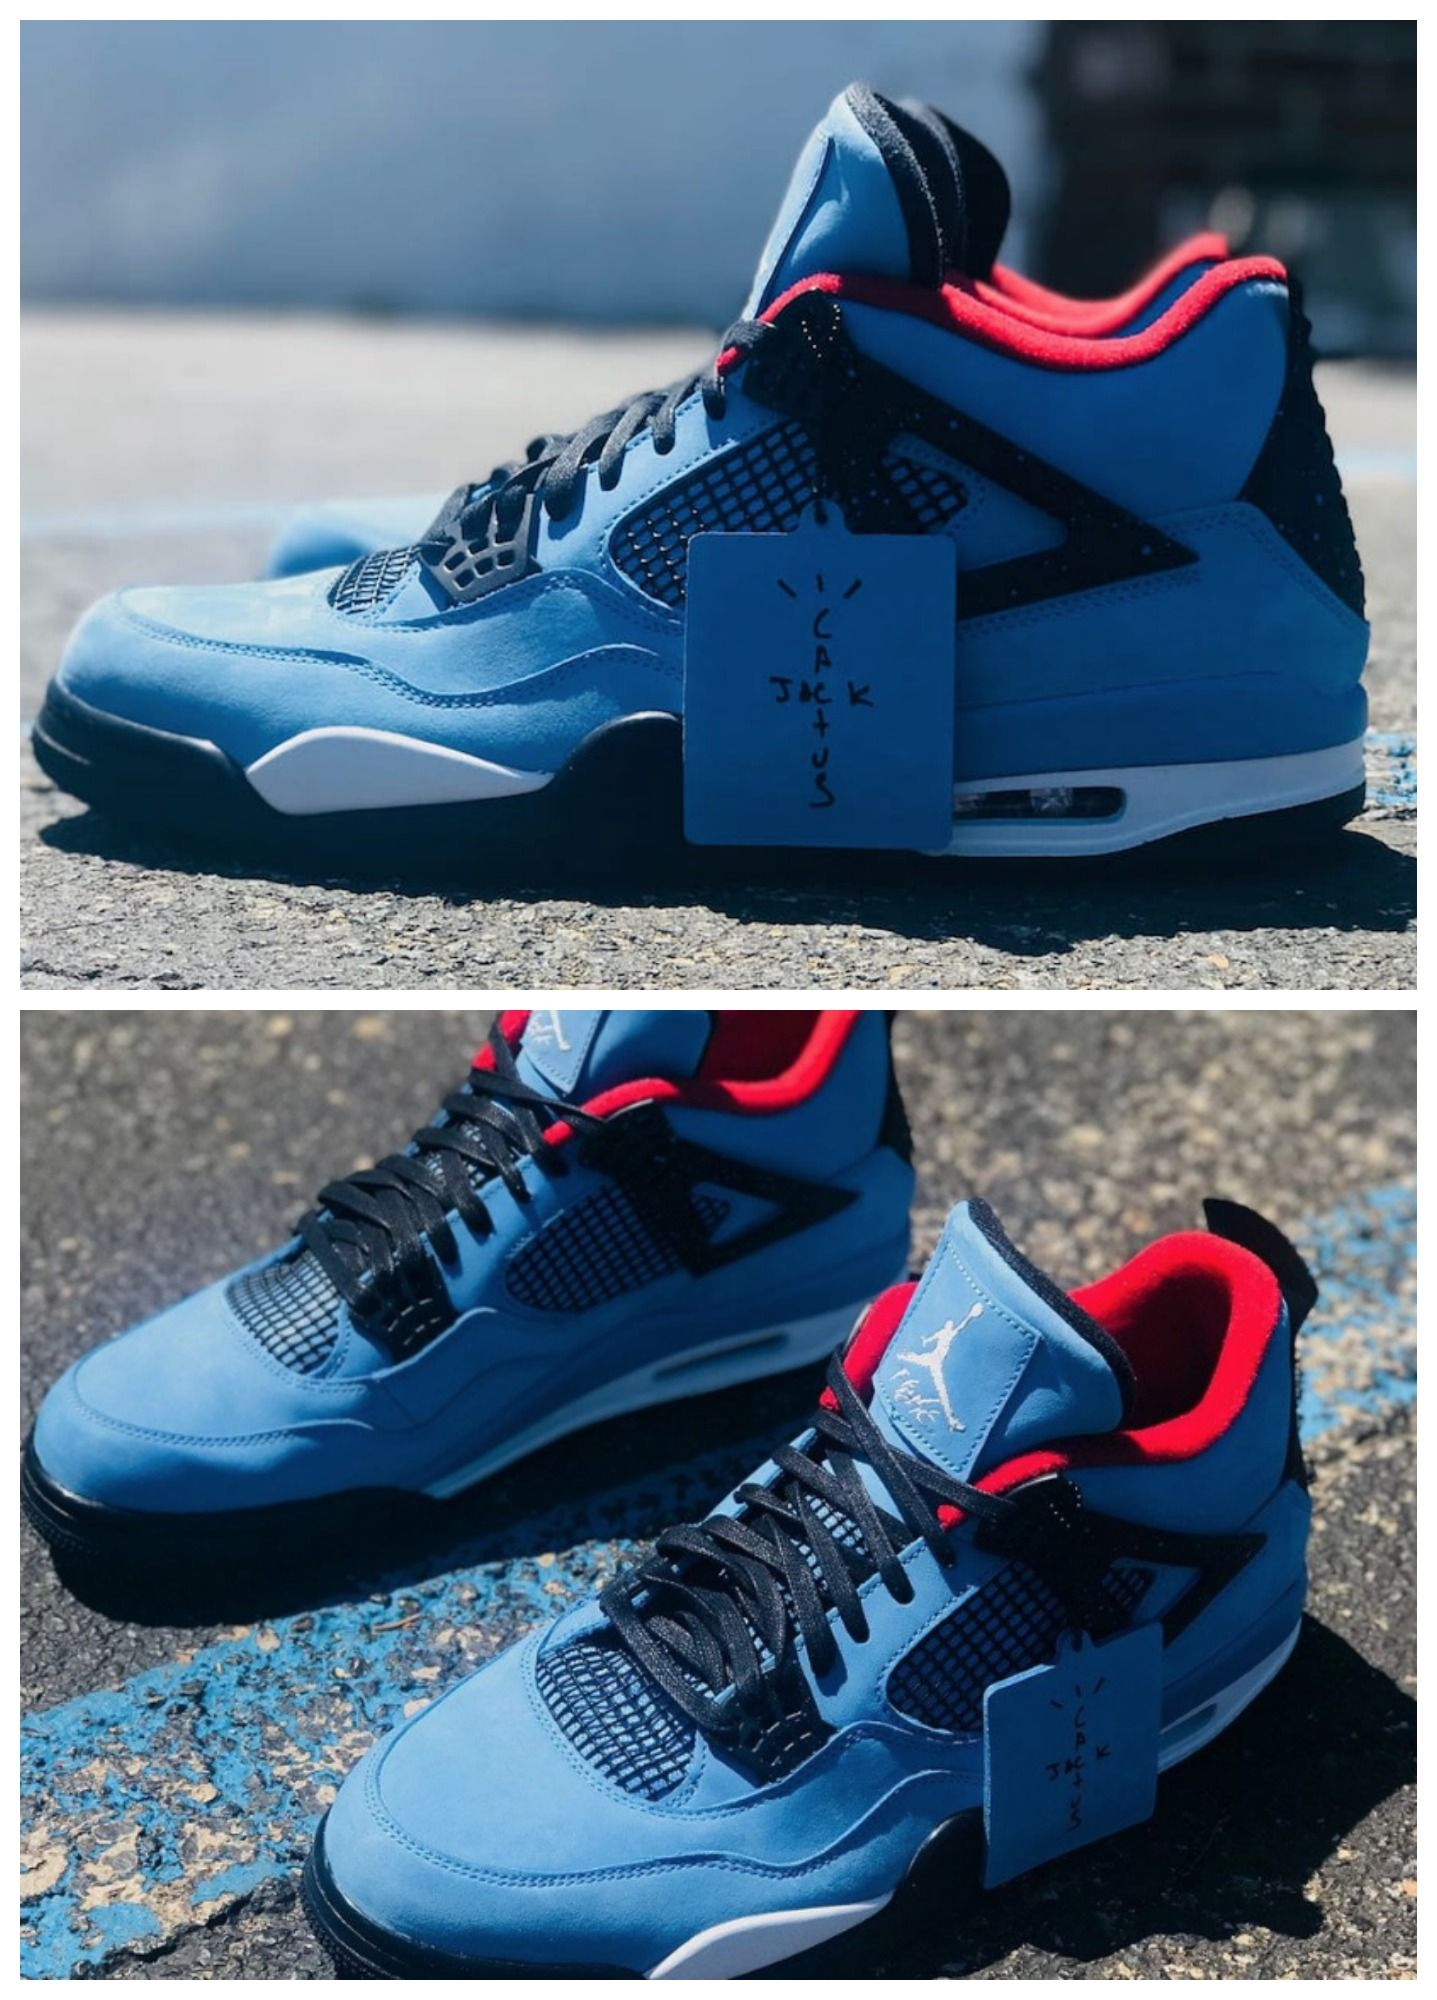 d1ac868cee66 Travis Scott x Air Jordan 4